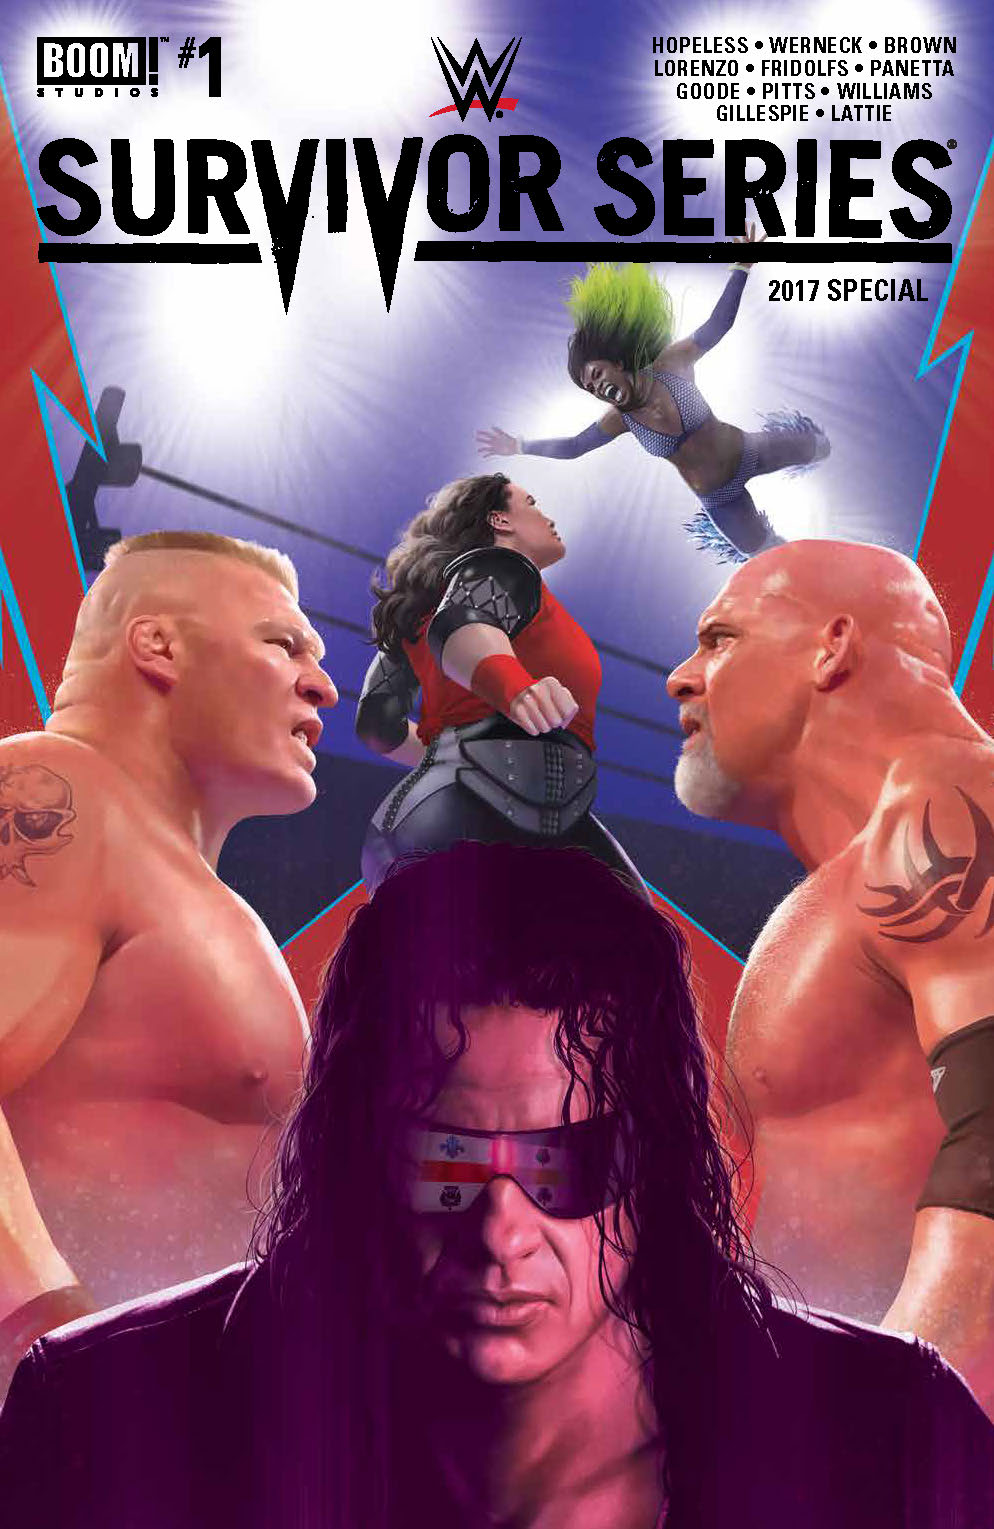 WWE SURVIVORS SERIES 2017 SPECIAL #1